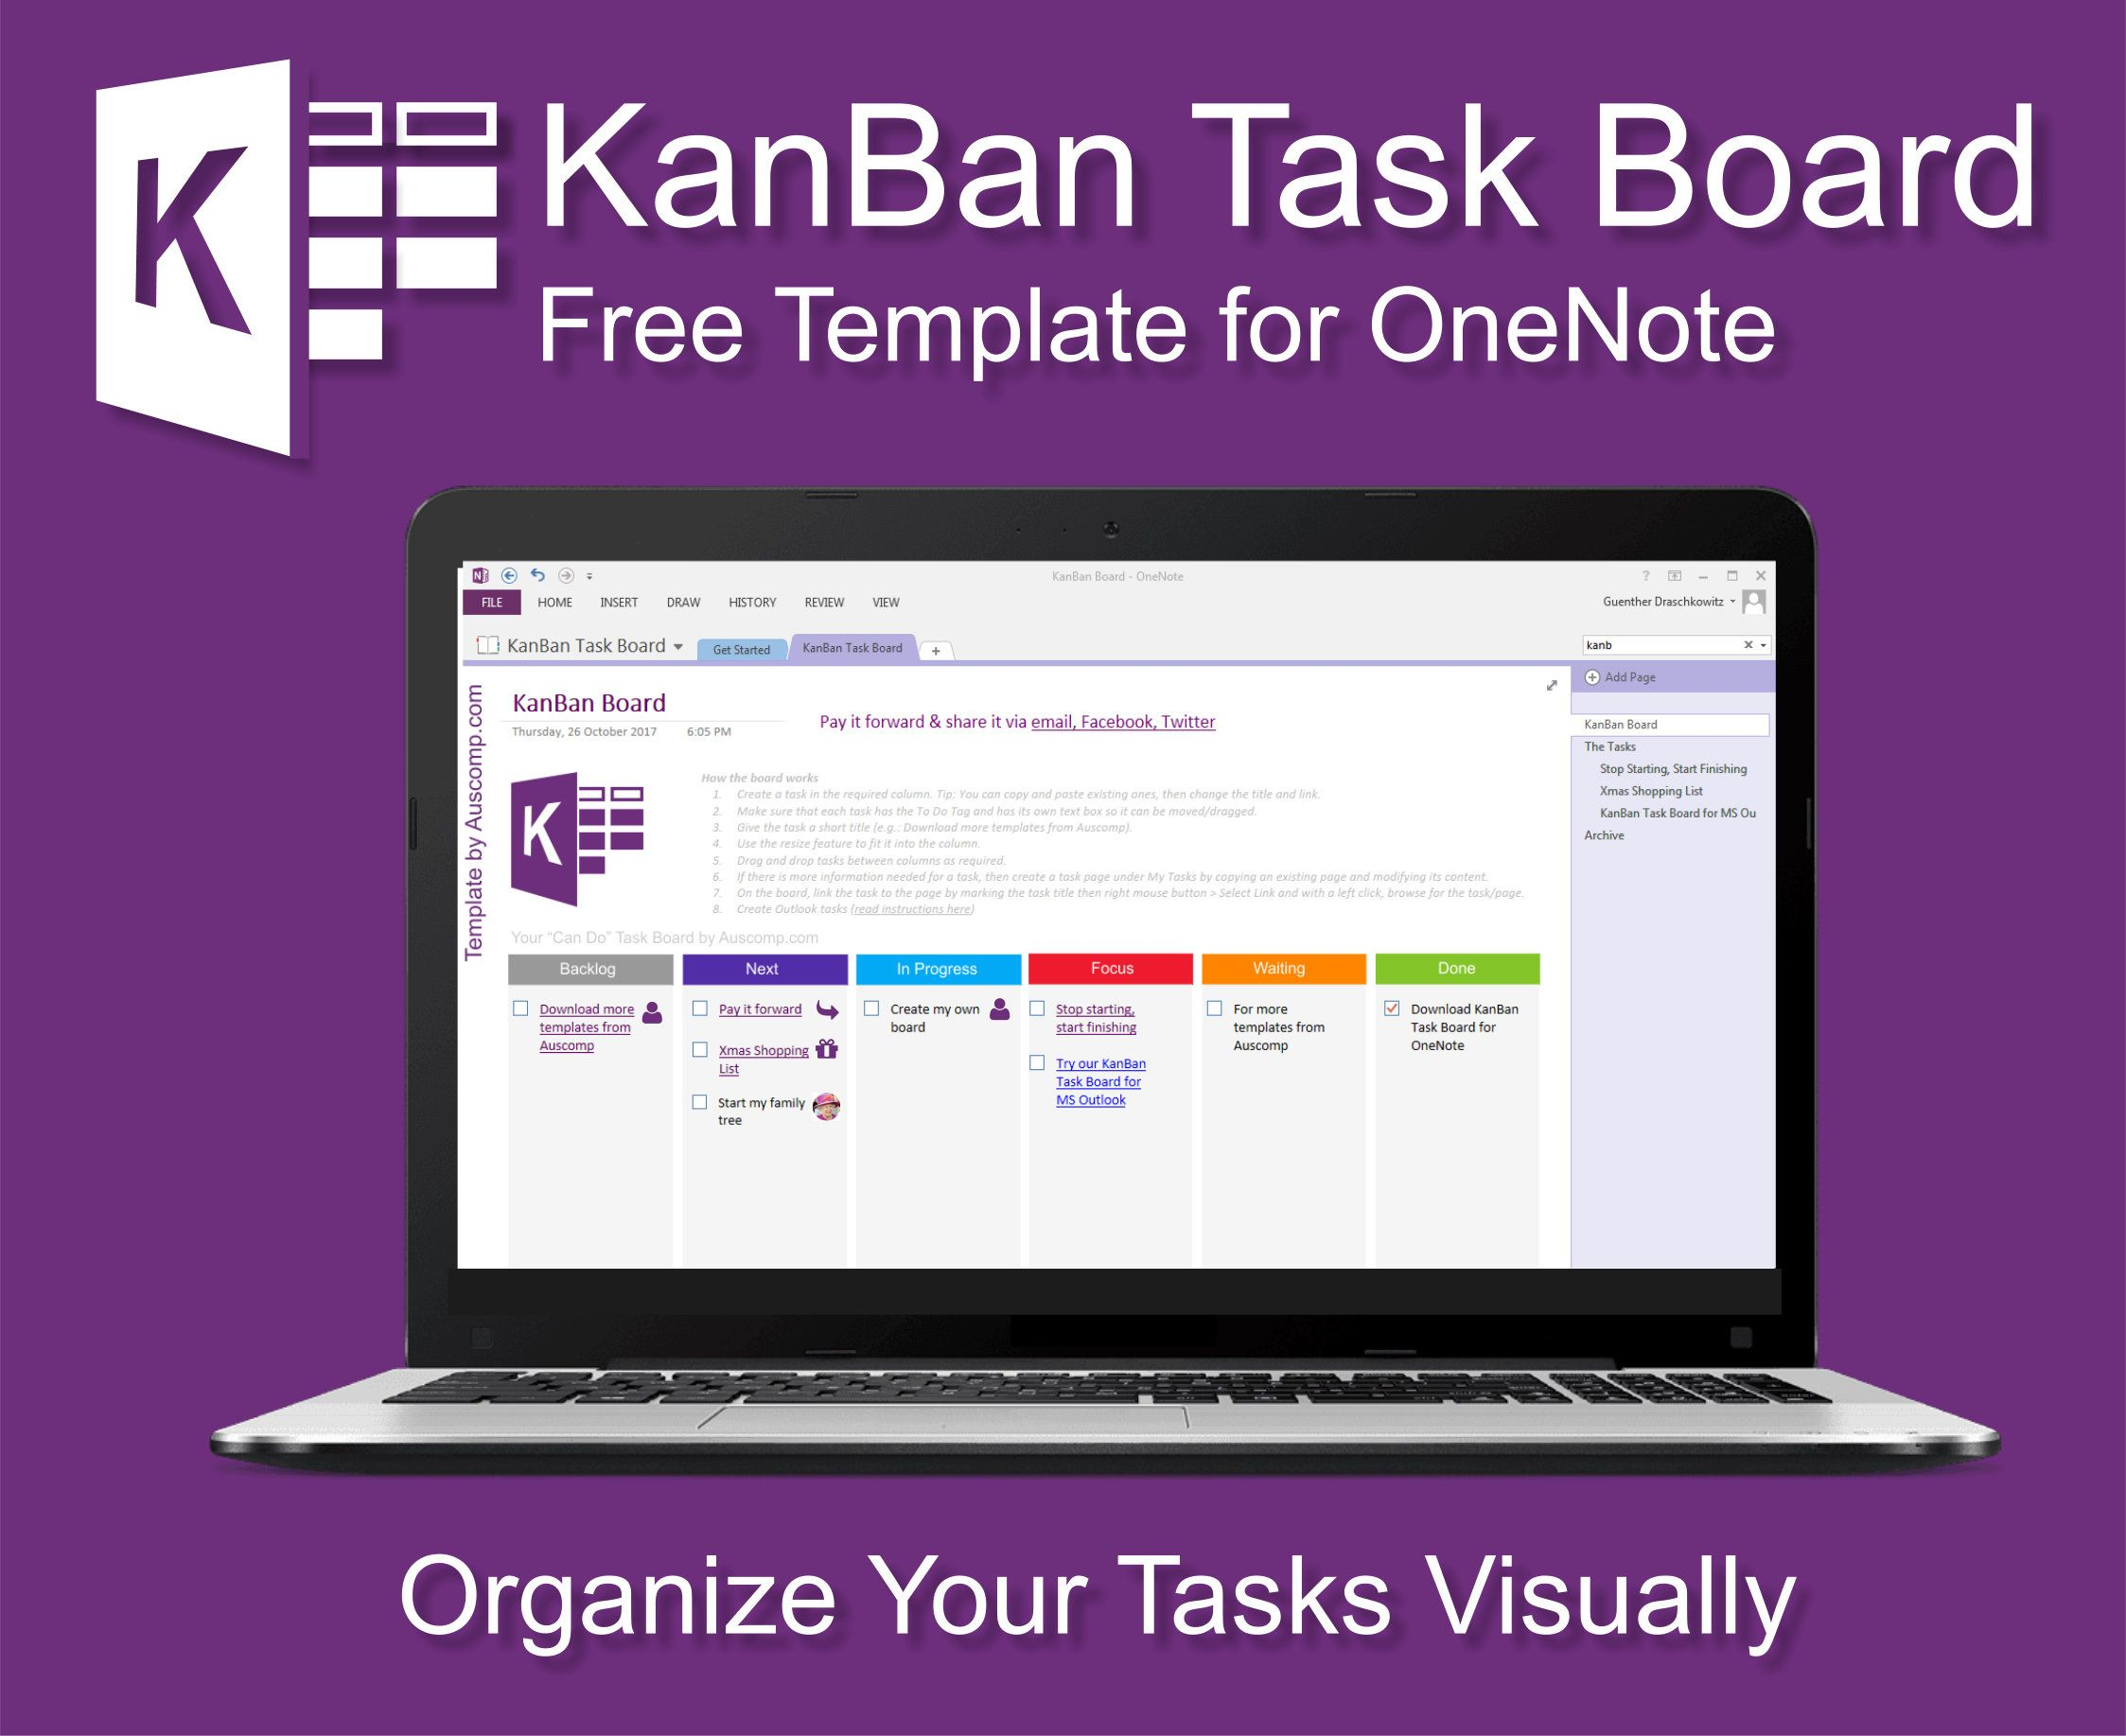 You Can Visualize Your Tasks In An Easy To Use Kanban